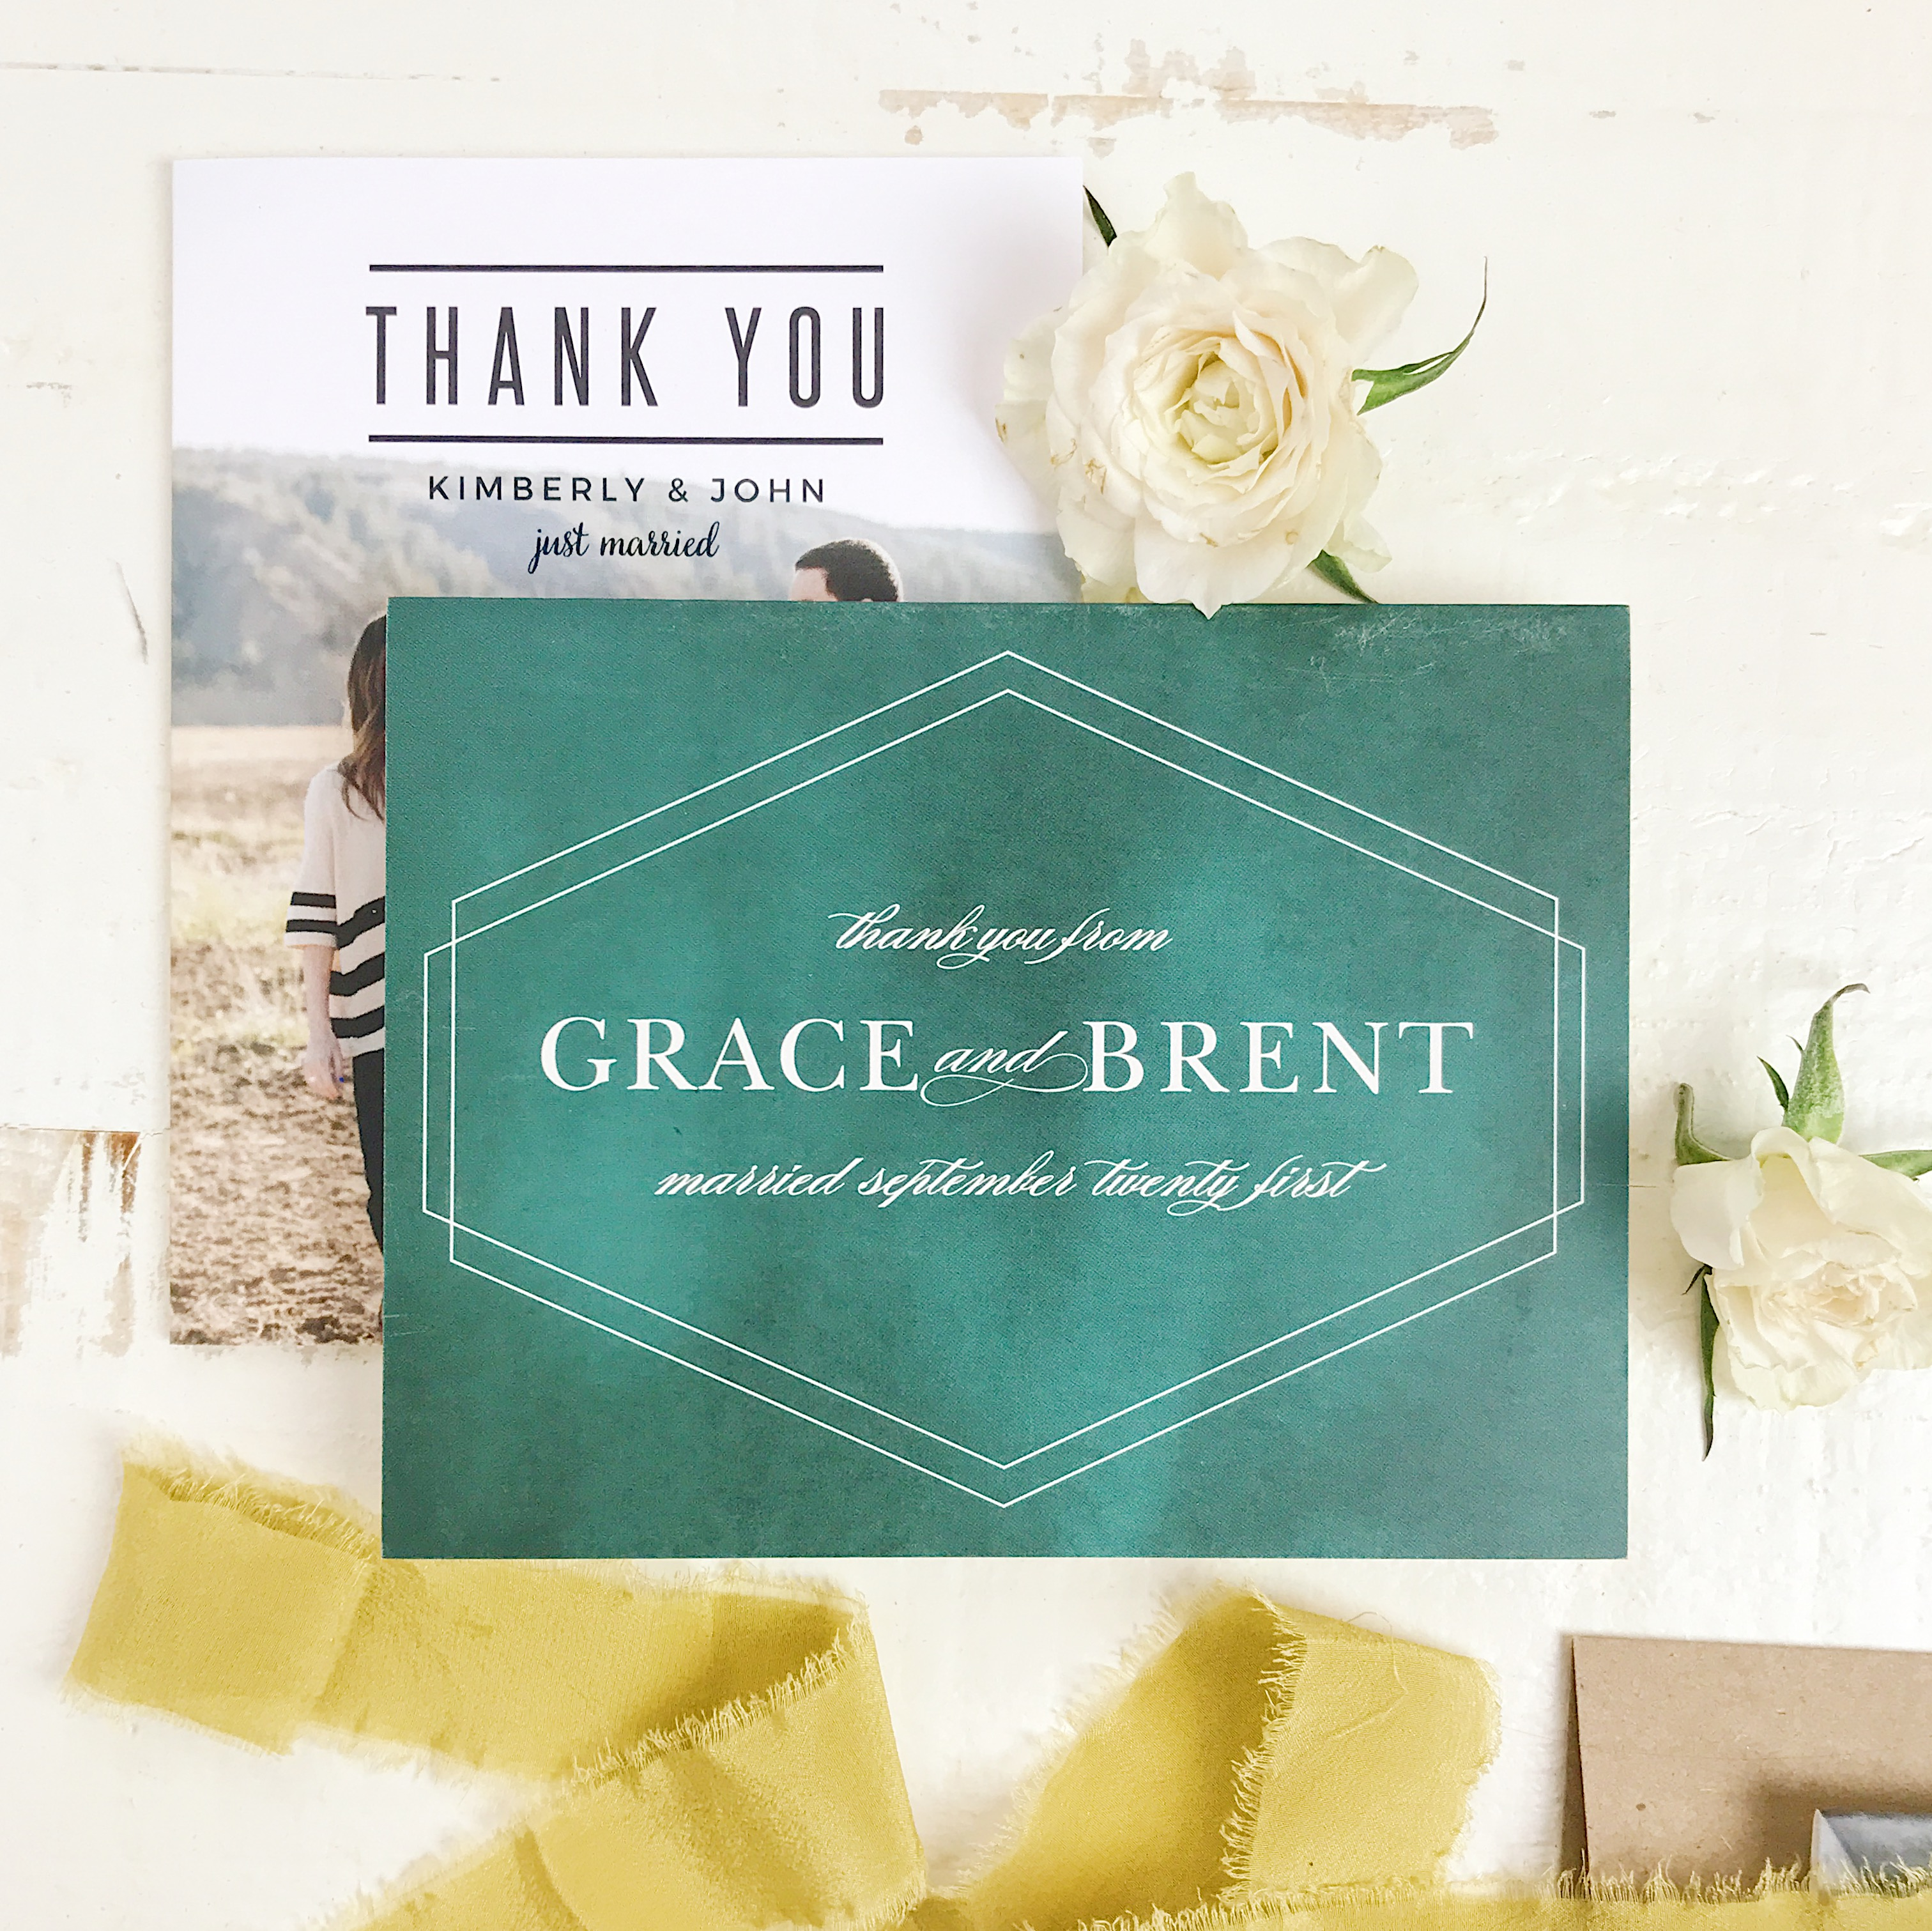 A thank you note that's equally thoughtful and meaningful contains a few key elements to really express your gratitude. Whether it's an overnight stay, a gift, or lovingly prepared dinner at neighbors, saying thank you can sometimes leave us at a loss for words. Follow the steps below to write the perfect not for those special moments.